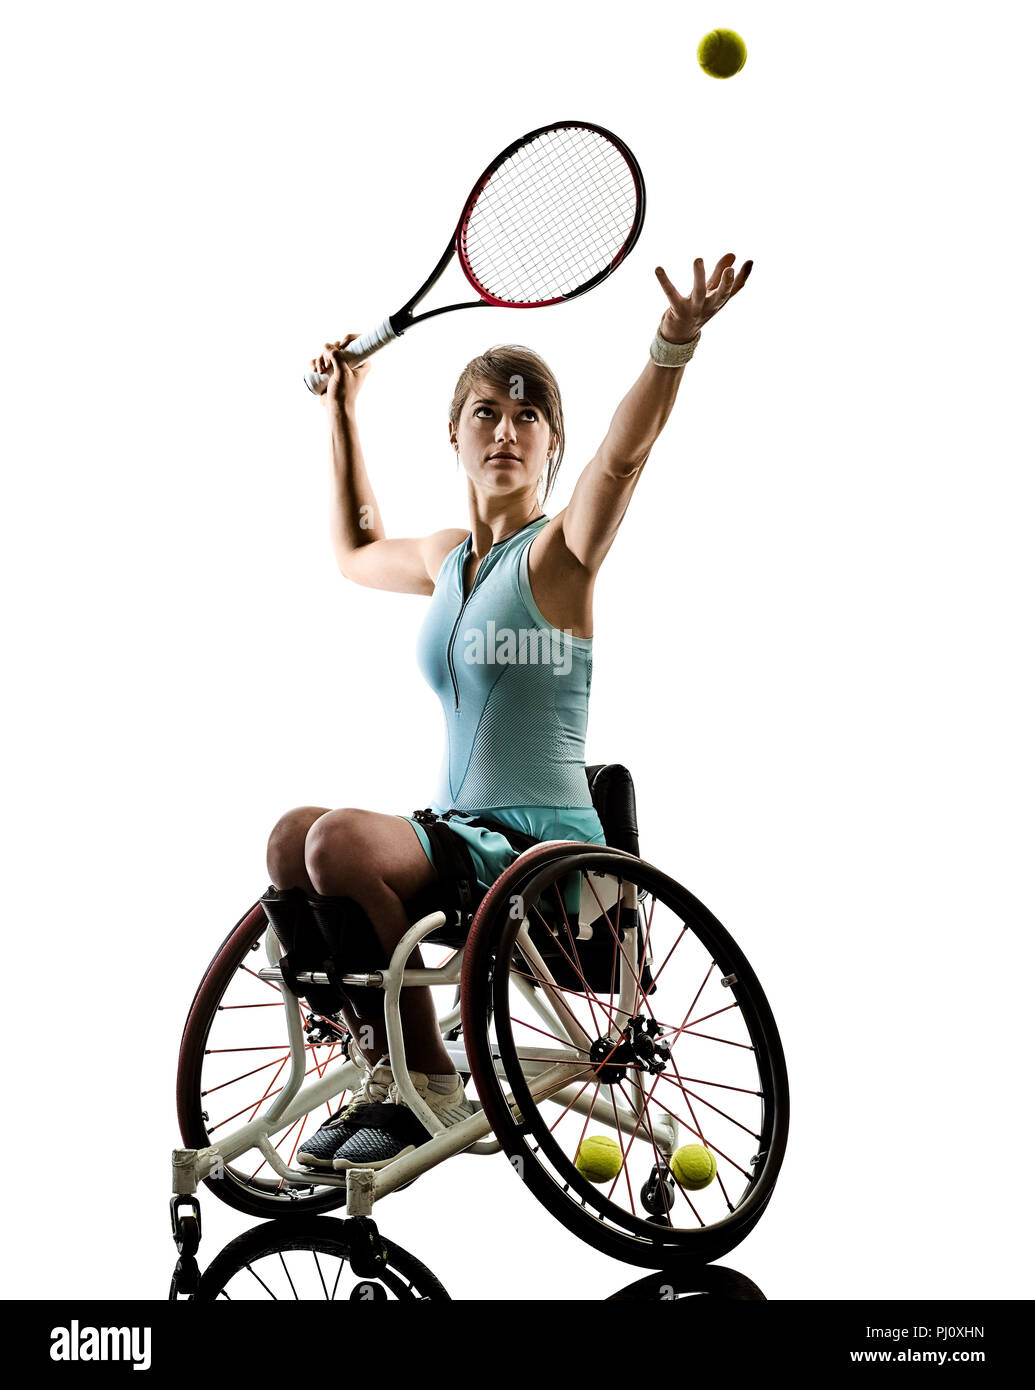 one caucasian young handicapped tennis player woman in wheelchair sport  tudio in silhouette isolated on white background - Stock Image